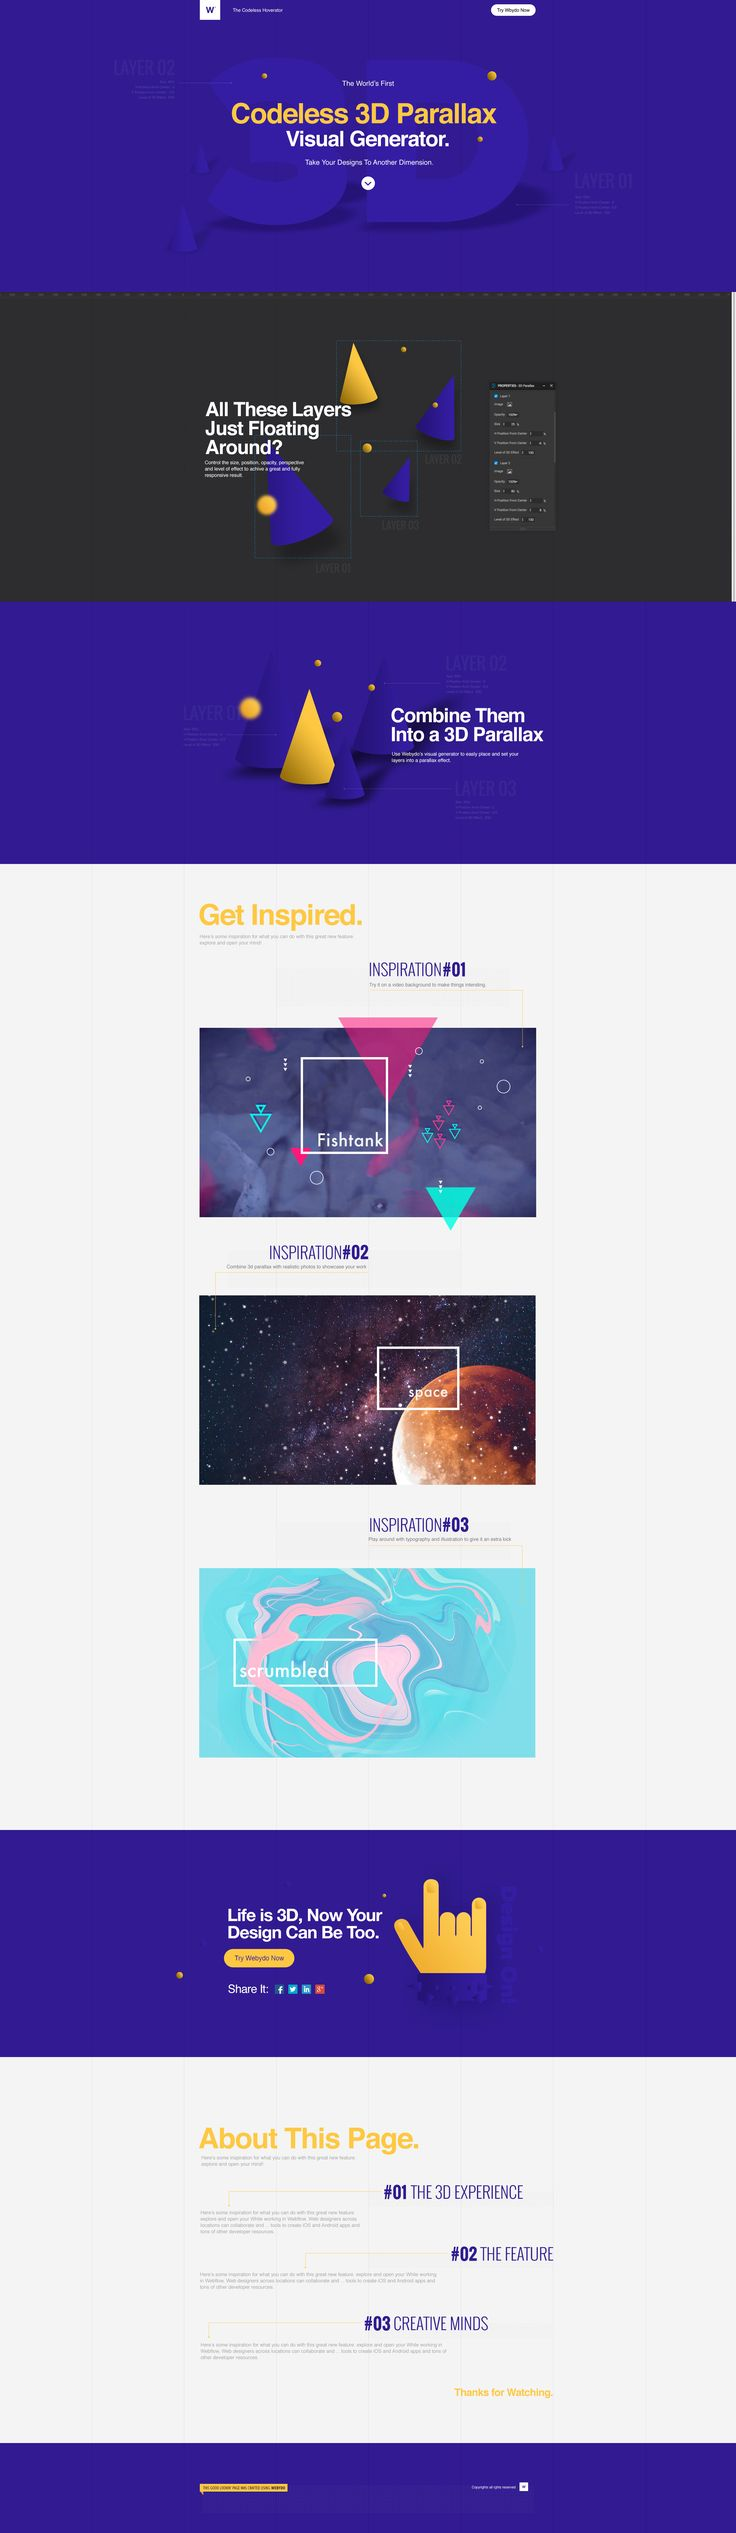 See more examples here: http://www.webydo.com/blog/web-design/parallax-scrolling/11-insanely-creative-examples-of-3d-parallax/ #3D #parallax #css #3dtransforms #webdesign #design #websitedesign #3dparallax #animation #illustration #video #graphicdesign #graphic #purple #yellow #webydo